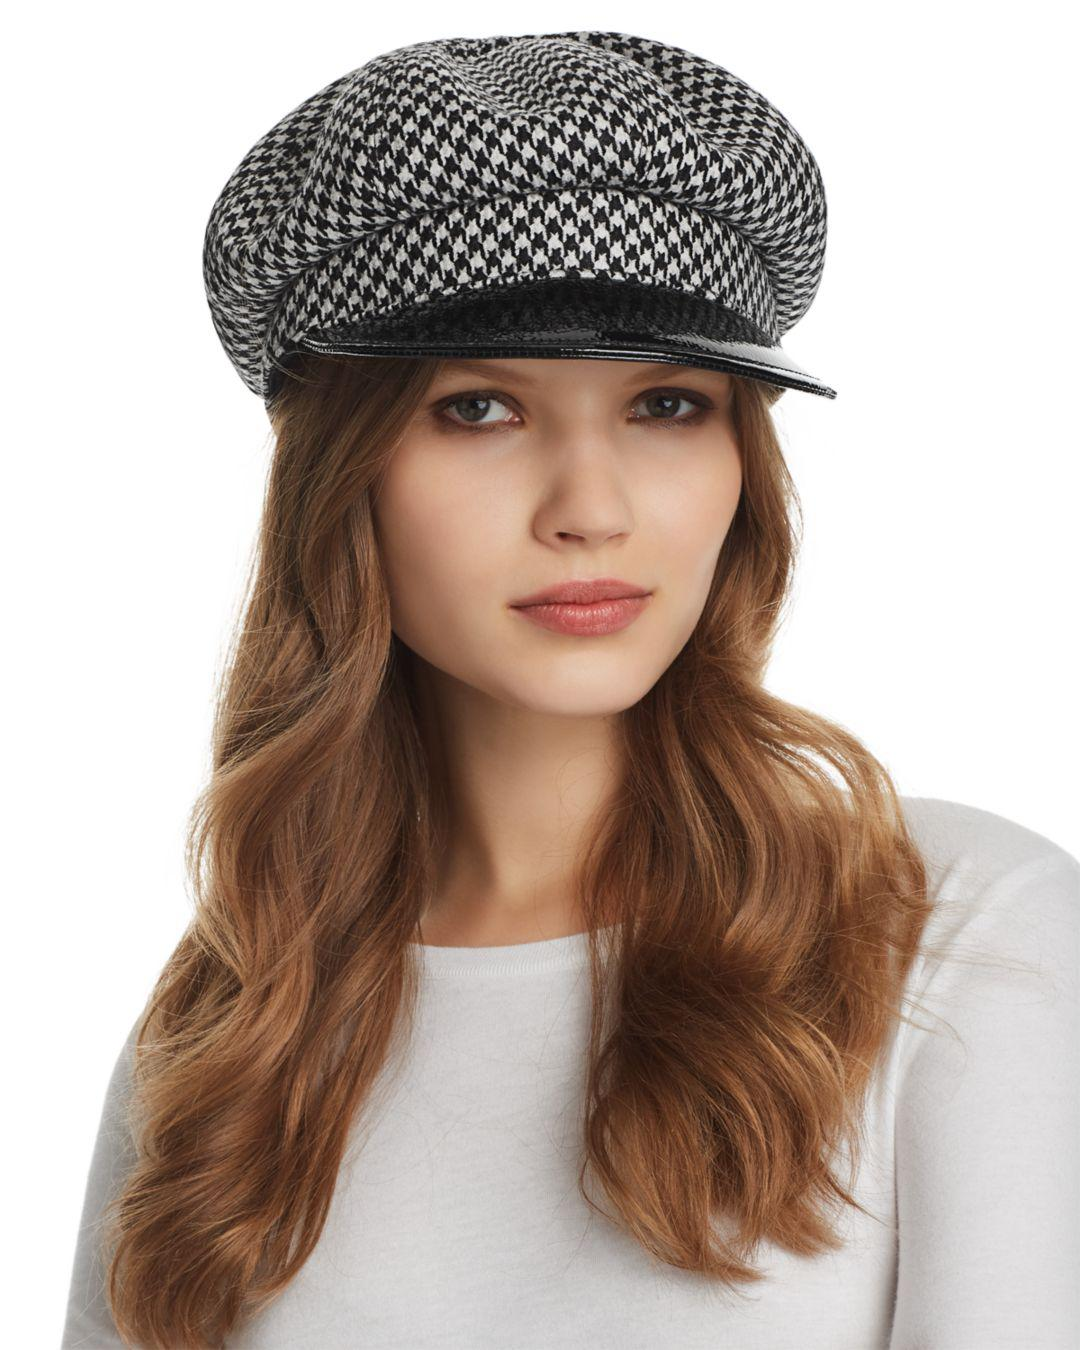 9f26a937350a4 Eric Javits Carnaby Houndstooth Newsboy Cap in Black - Lyst